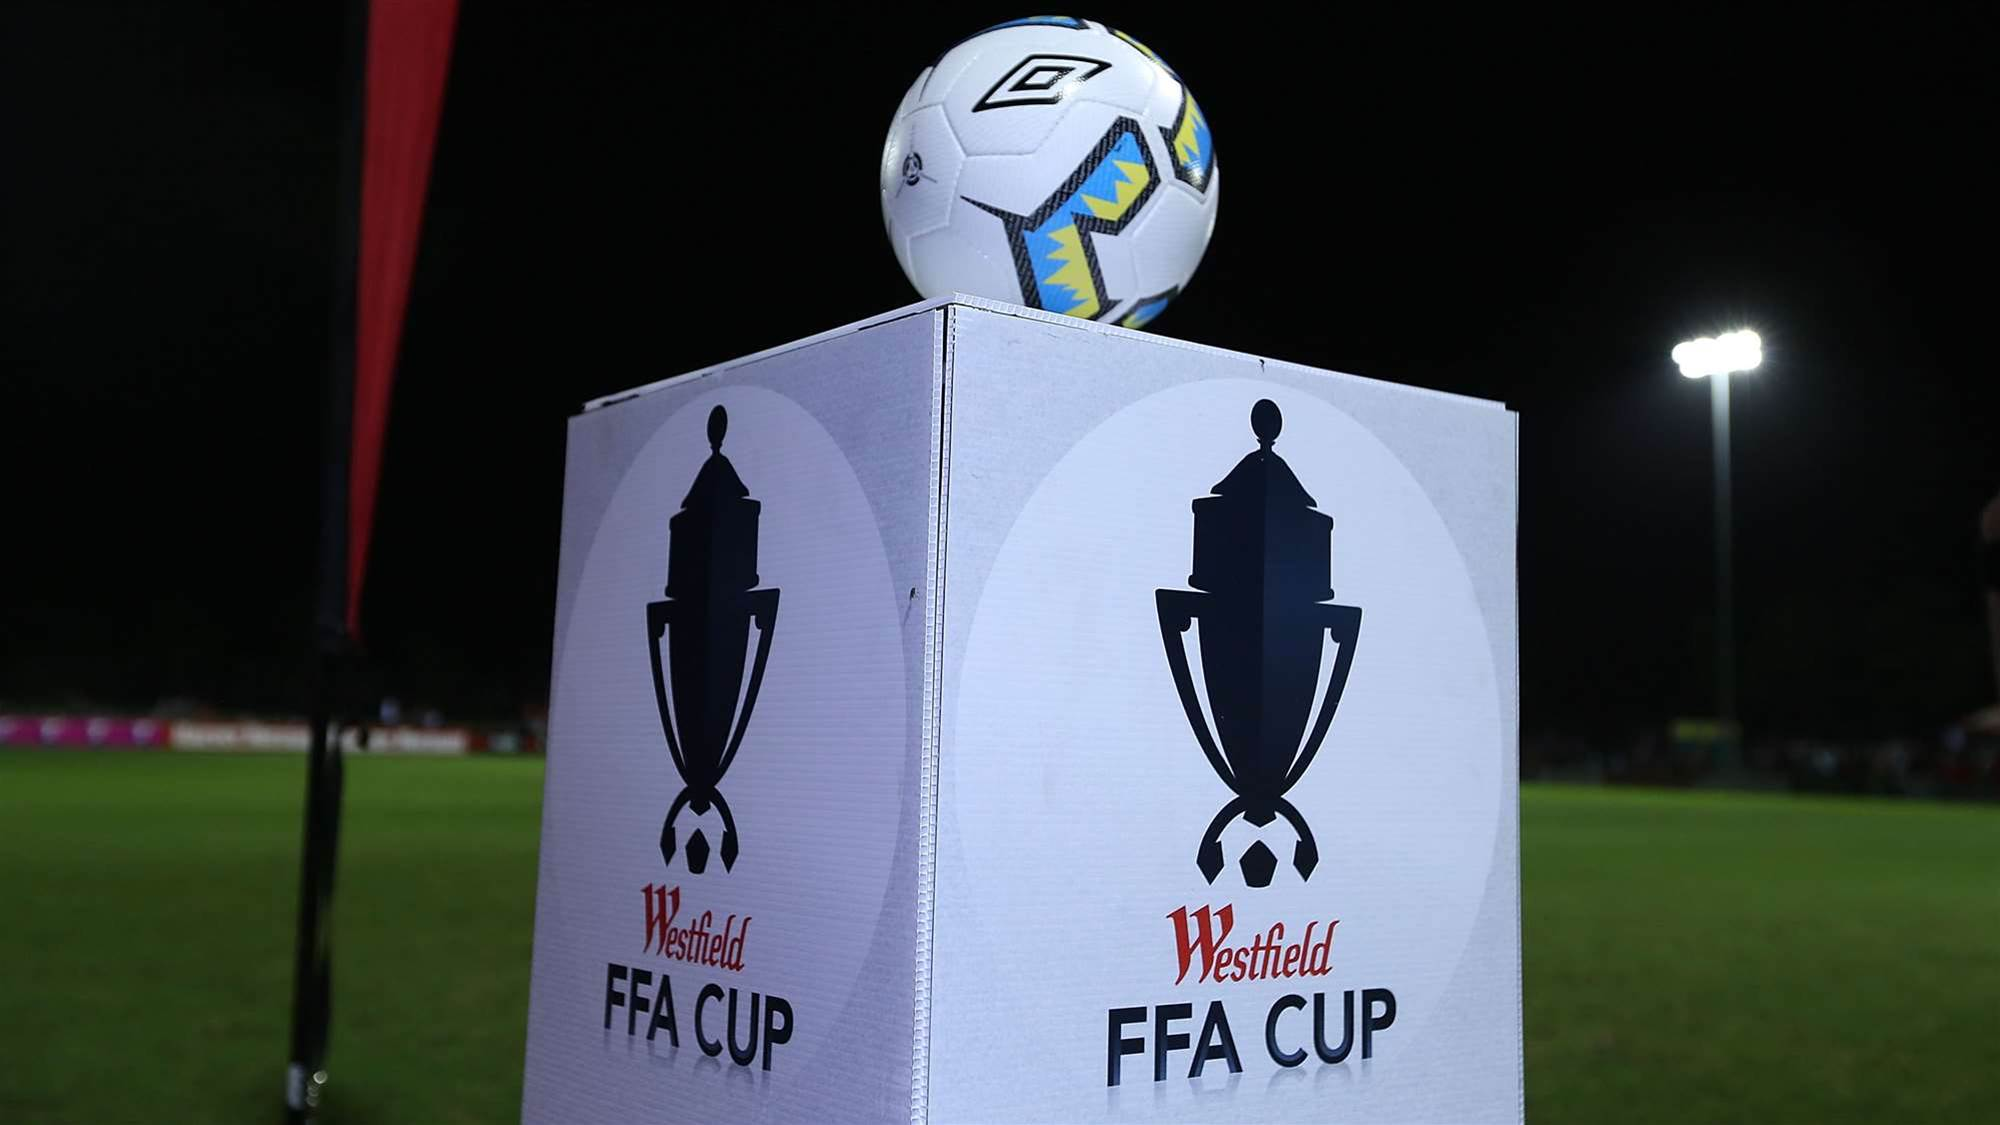 Preview: FFA Cup Quarter Finals MD 2